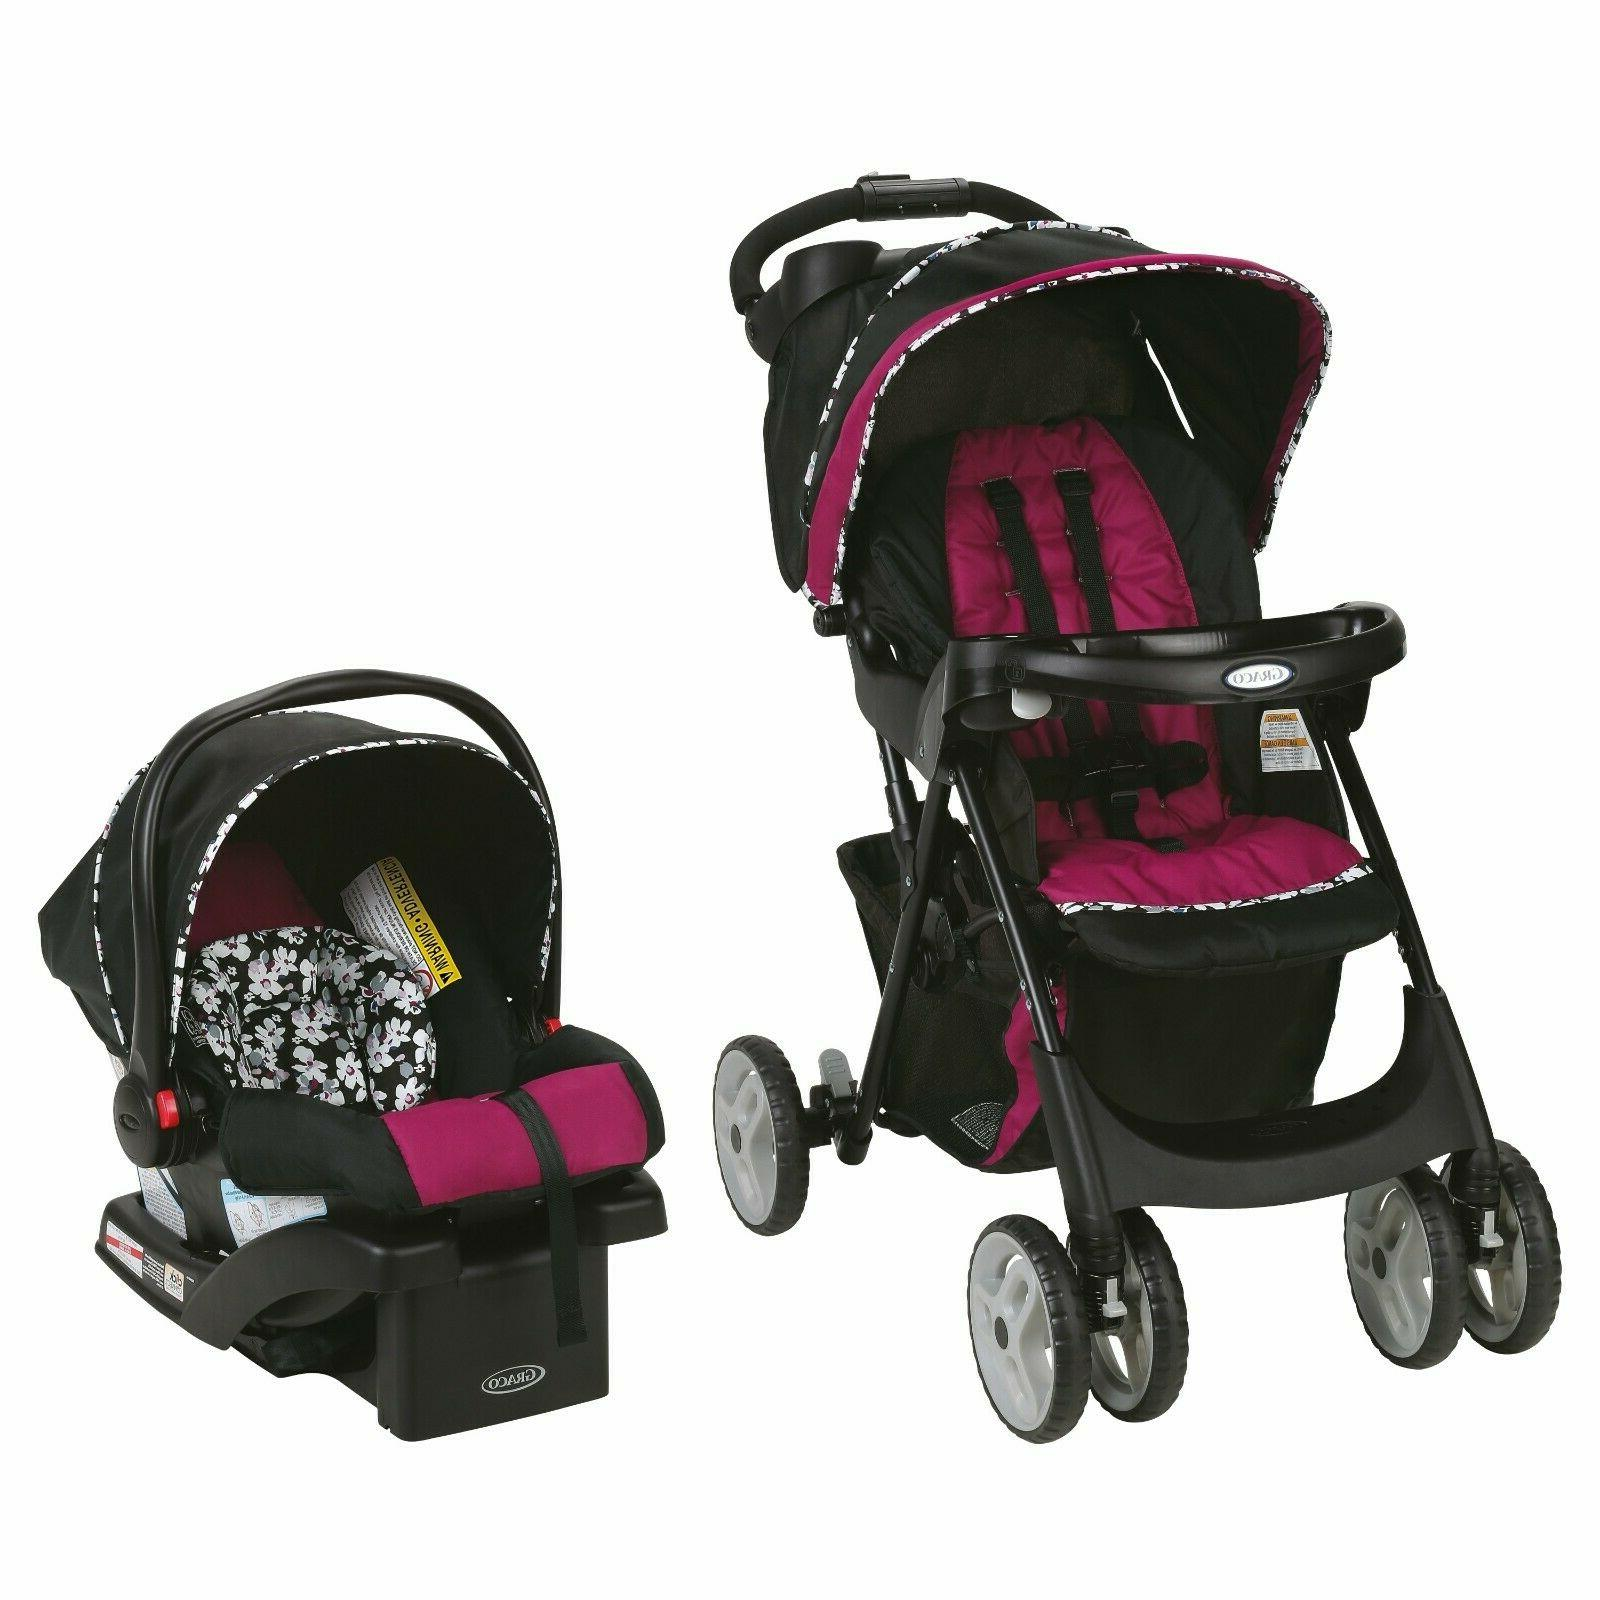 baby stroller travel system with car seat